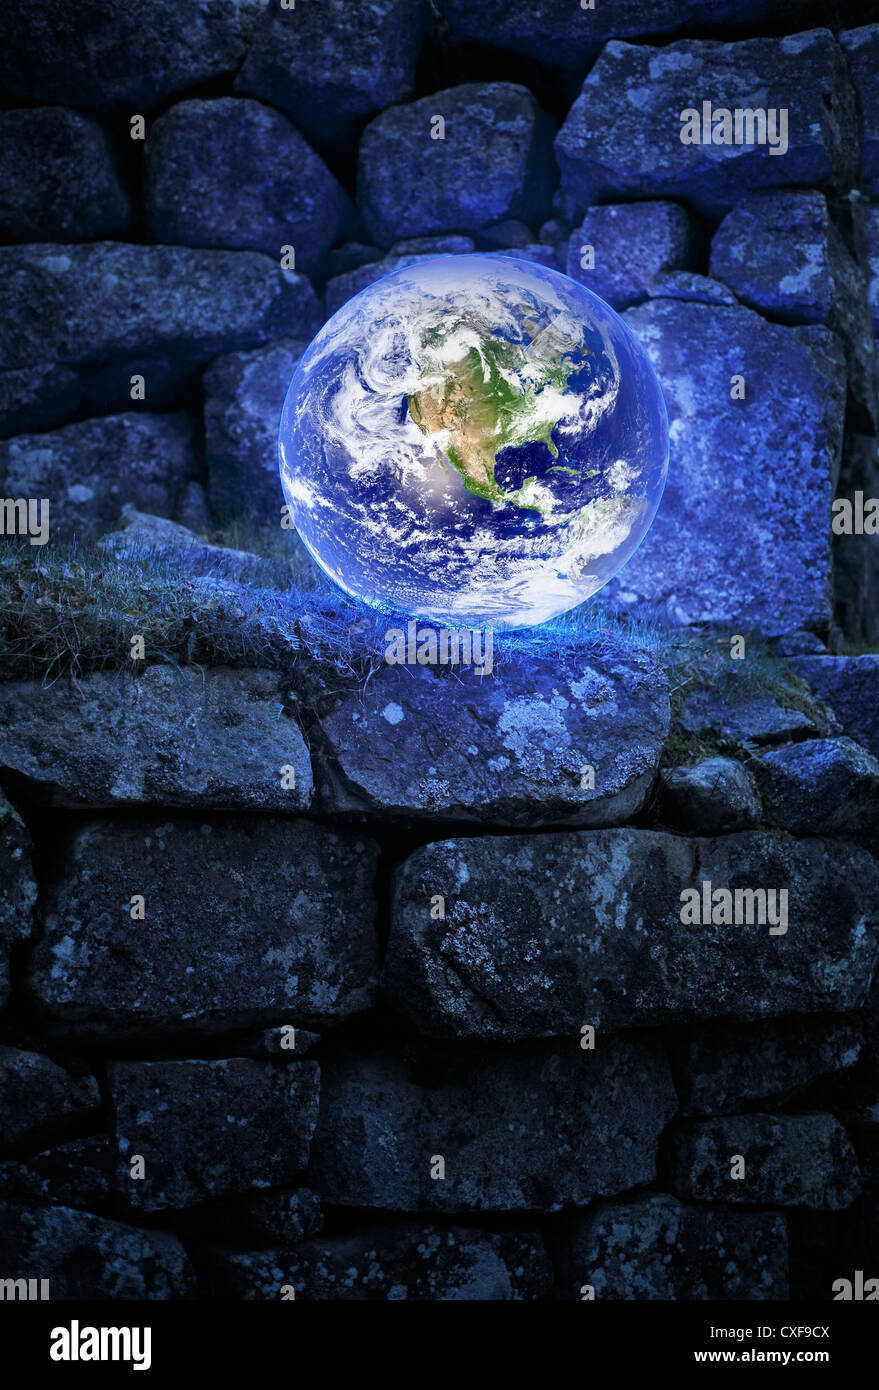 Planet earth on an old castle wall. Earth image provided by NASA. - Stock Image